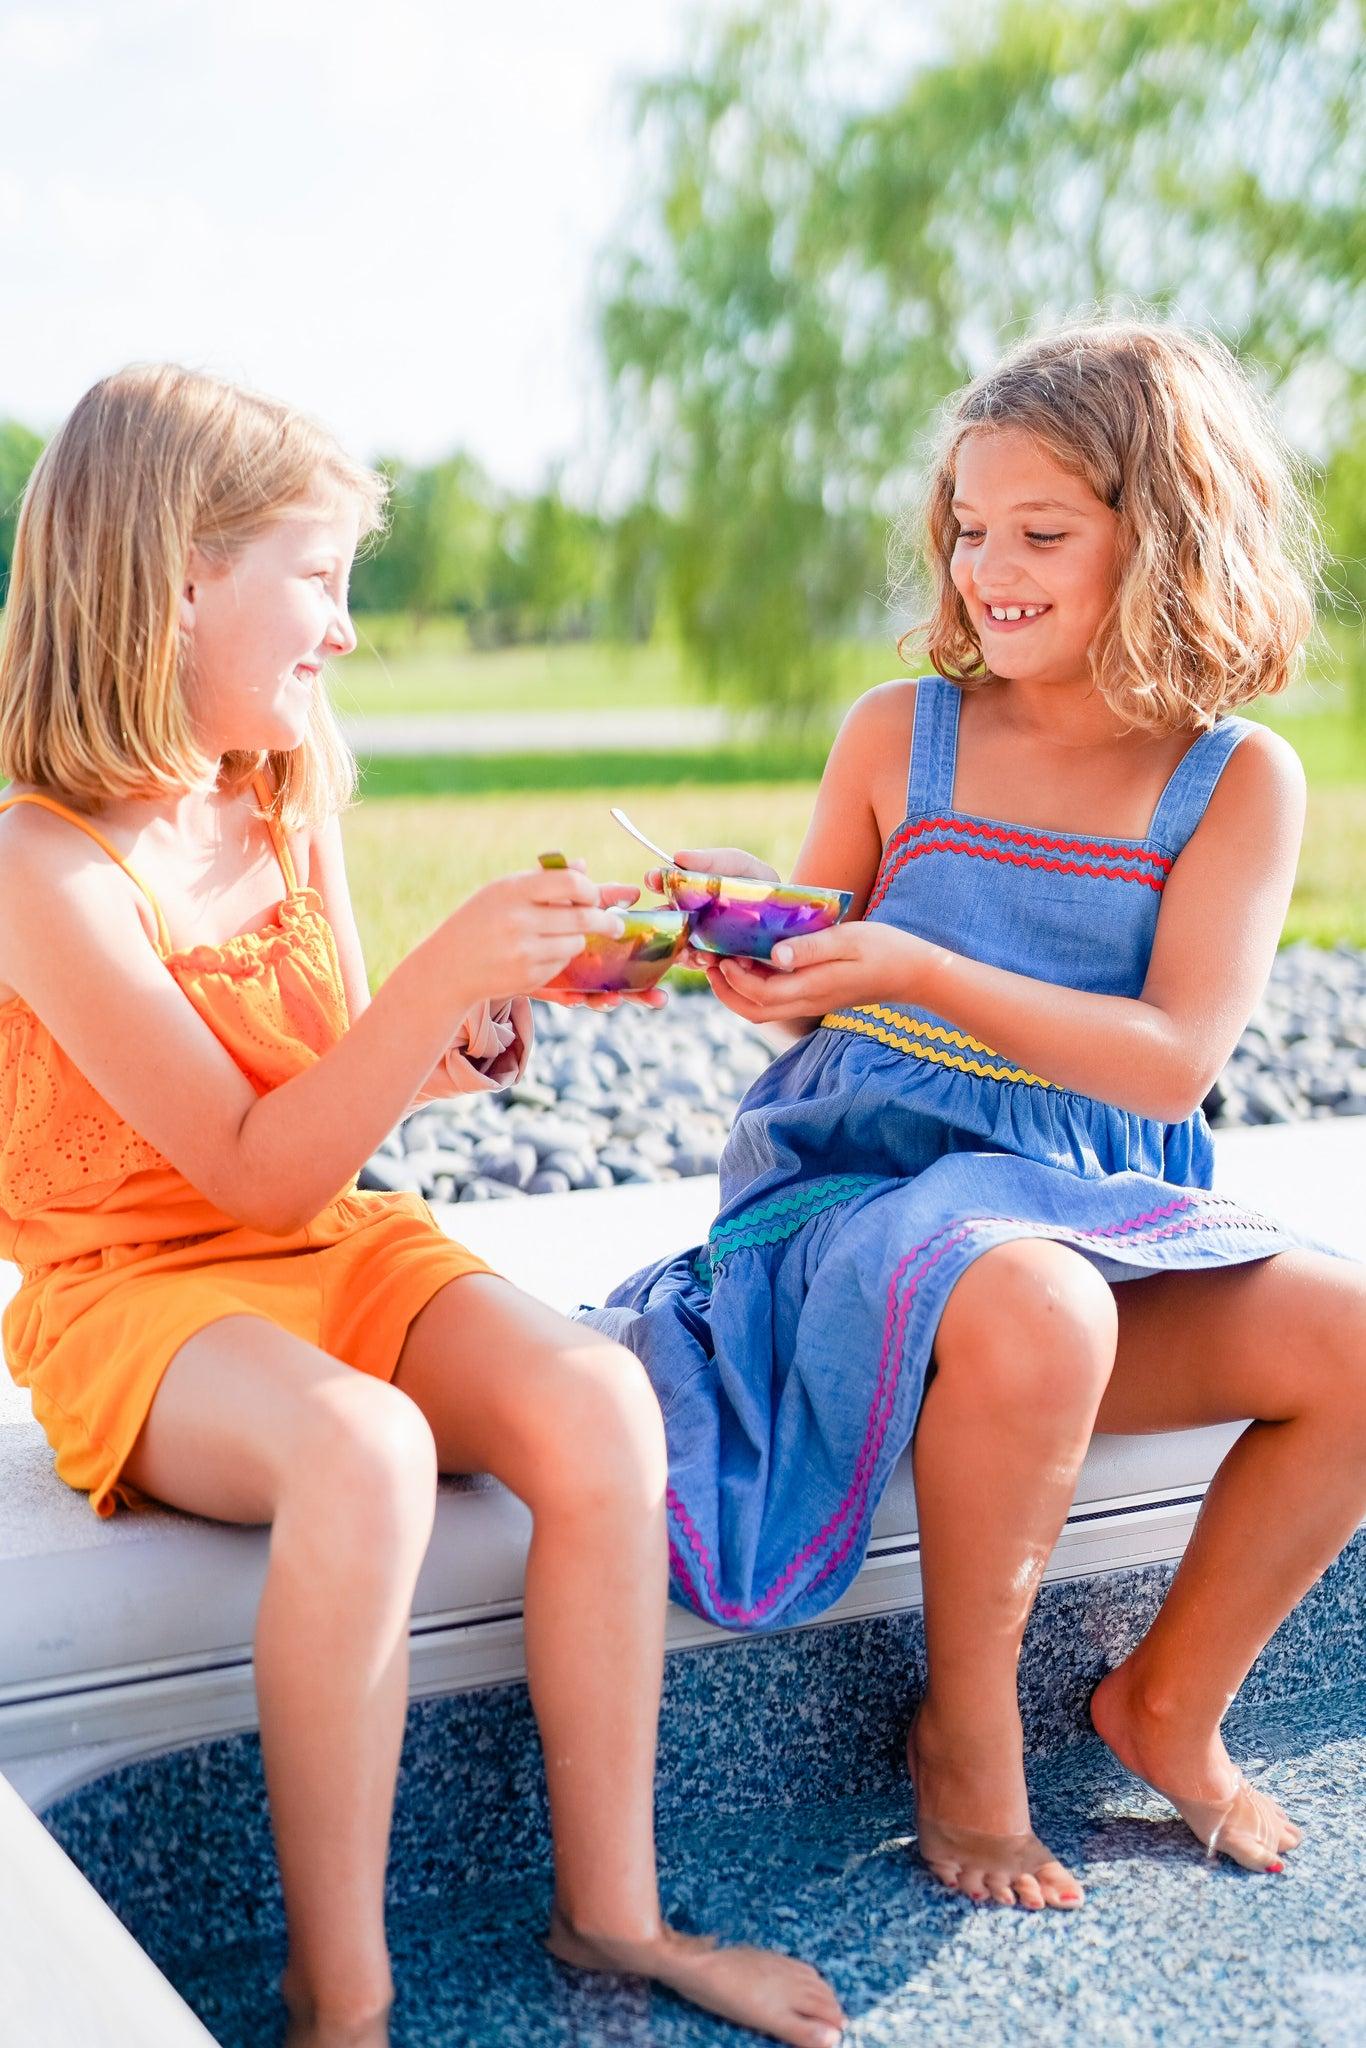 Two children using rainbow and blue stainless steel bowls and spoons non-toxic, plastic-free, 100% metal, no chipping or peeling